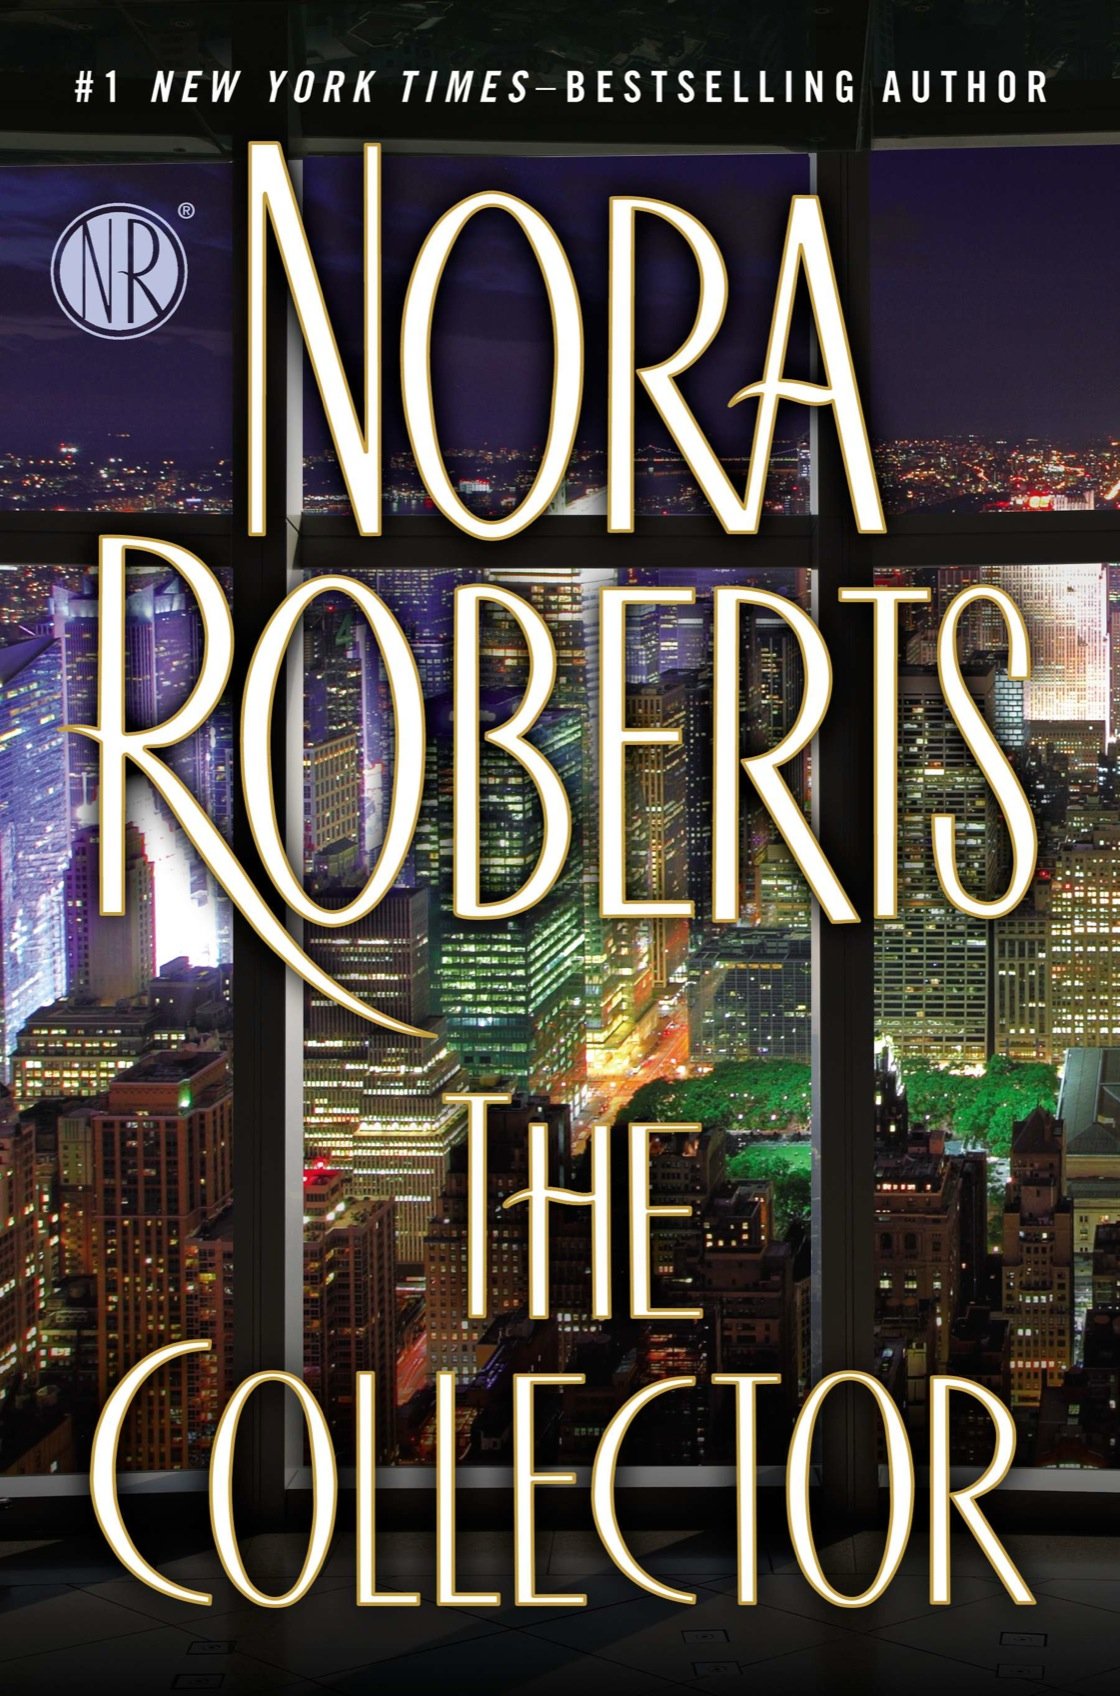 The Collector (2014) by Nora Roberts